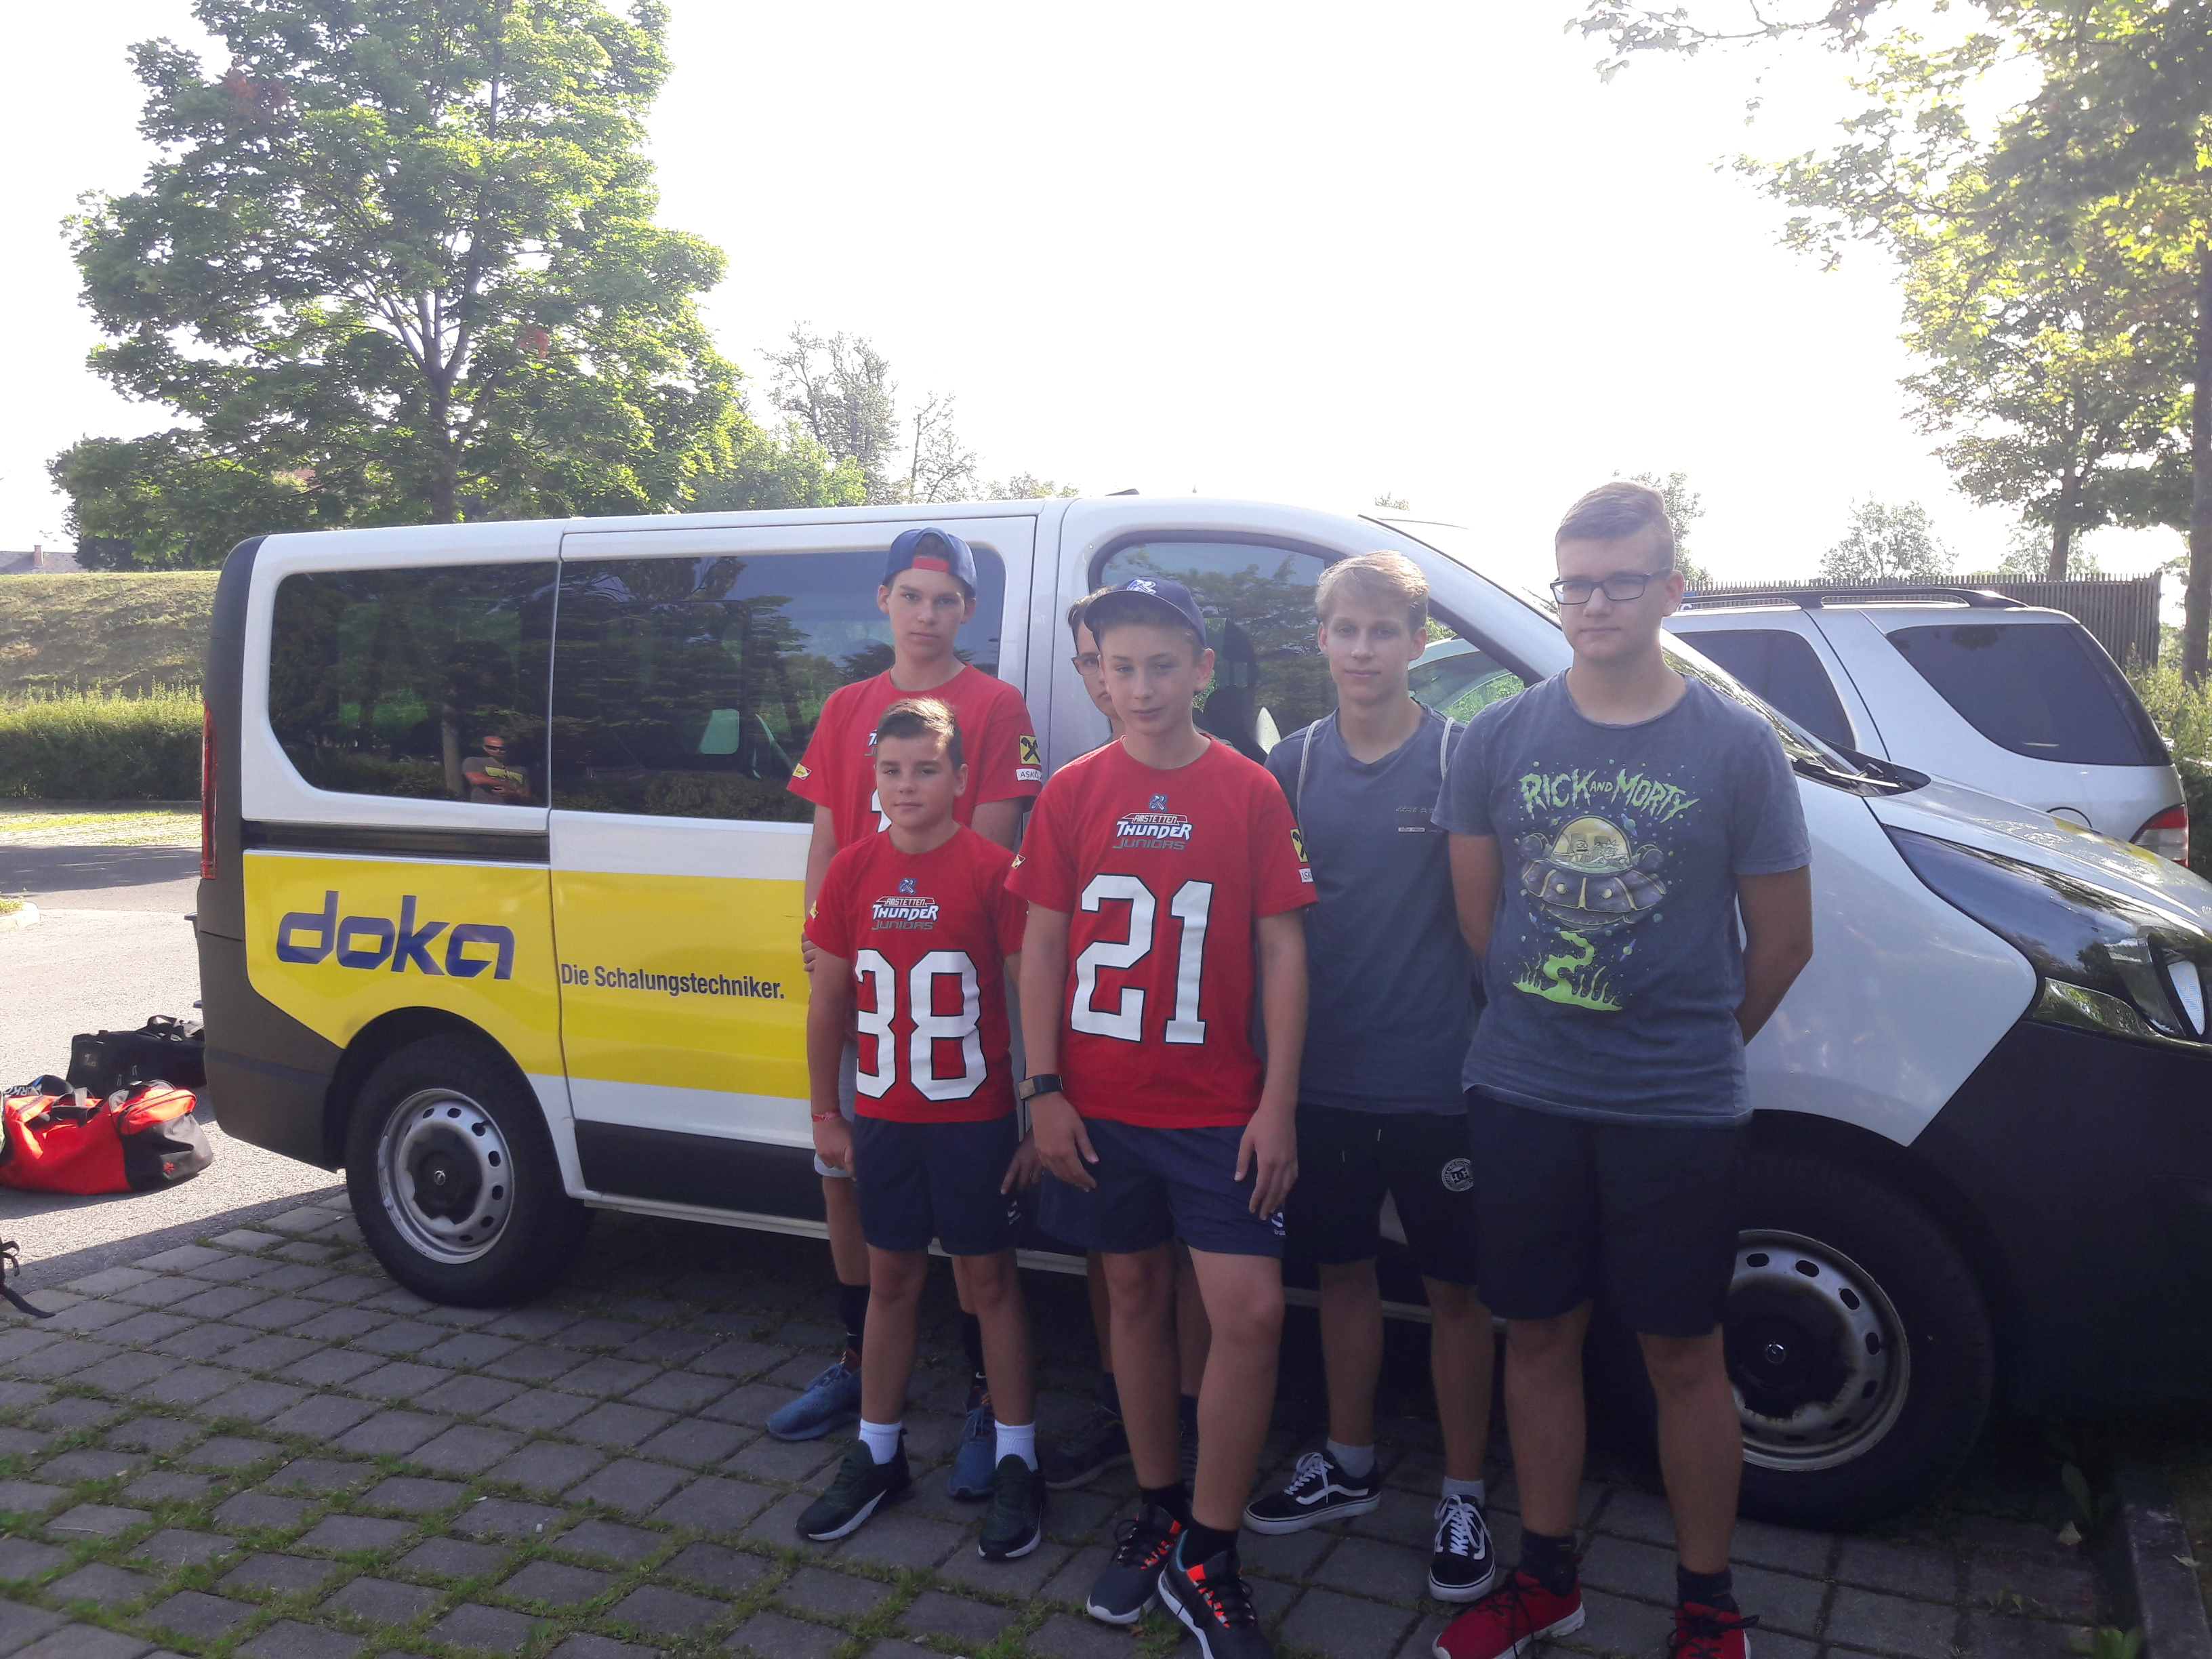 Thunder Juniors U15 mit Doka Bus